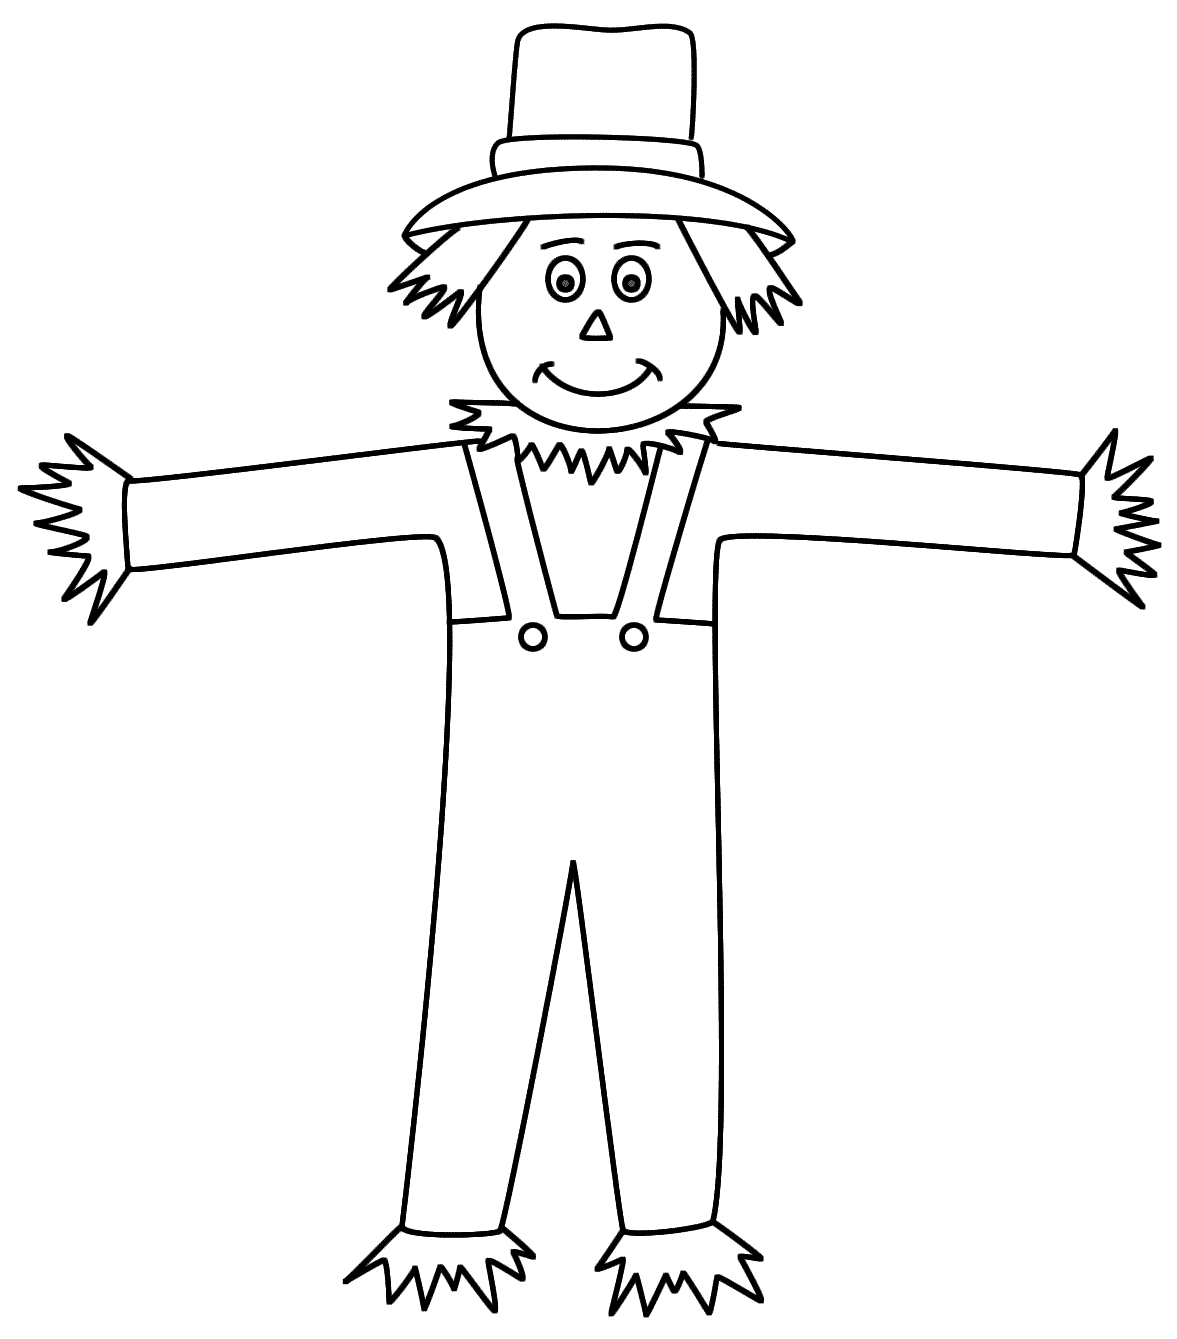 It is a photo of Scarecrow Template Printable intended for toddler